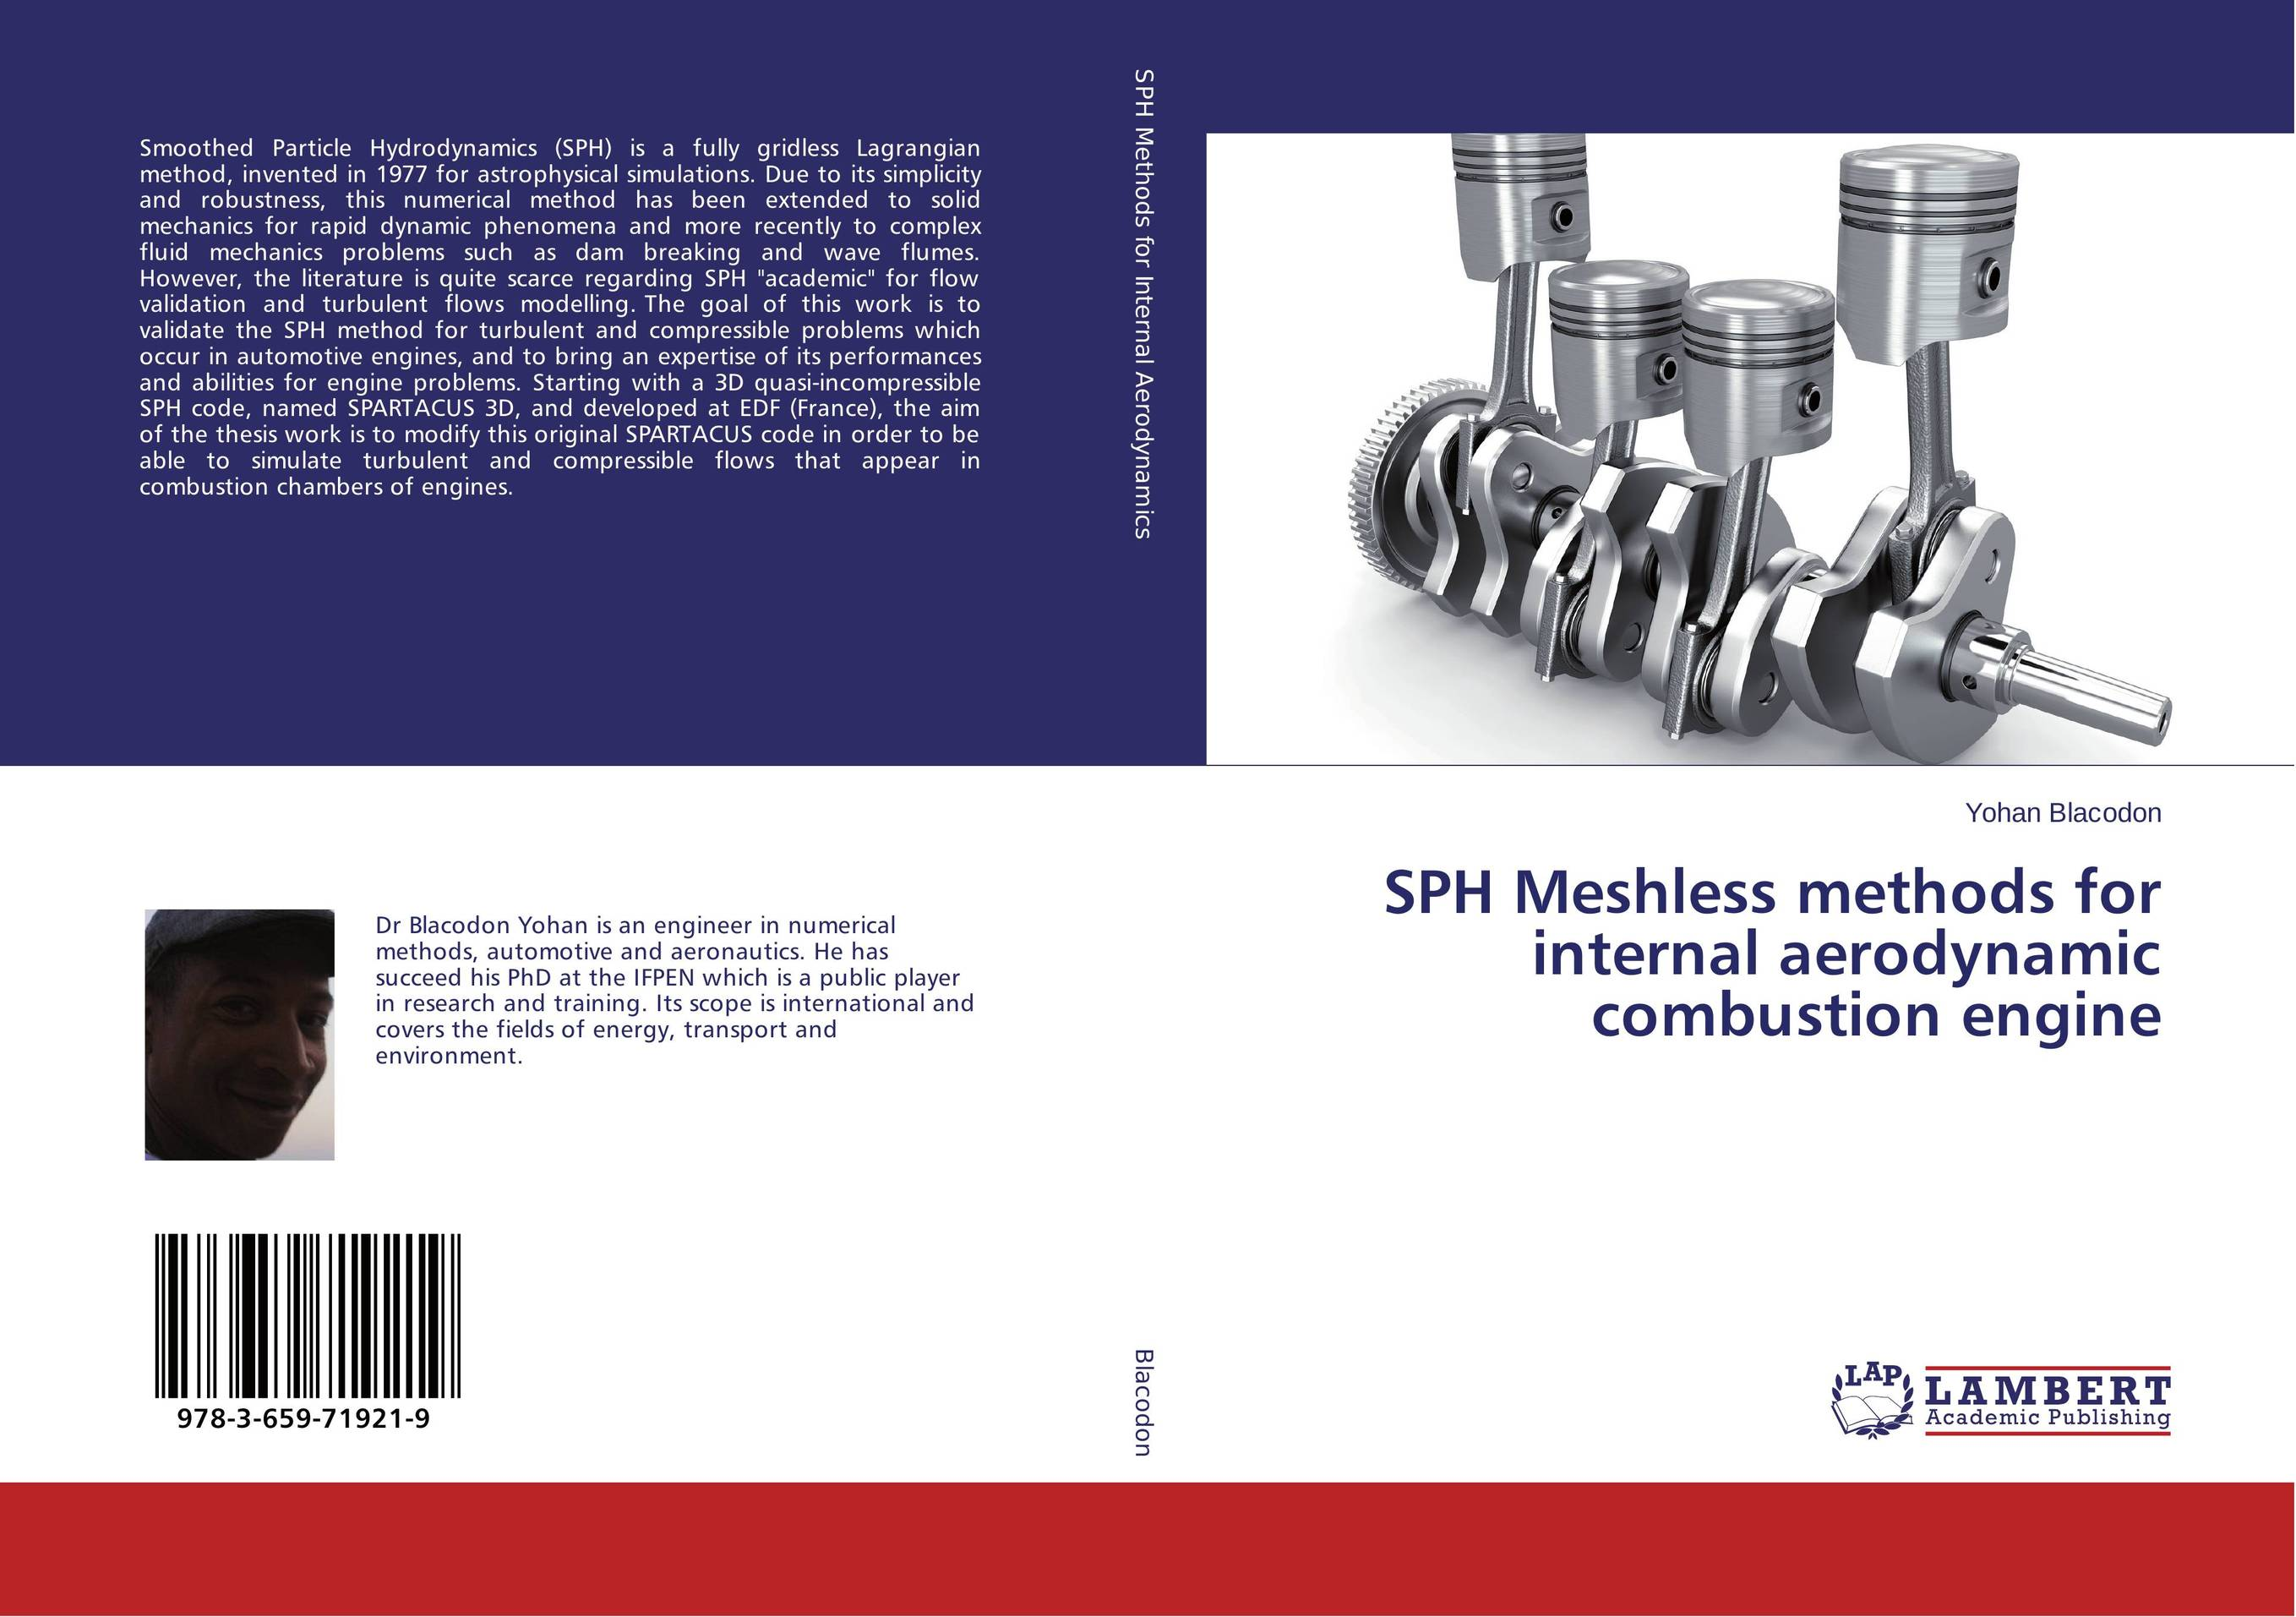 SPH Meshless methods for internal aerodynamic combustion engine turbulent jet flames from modelling to simulations